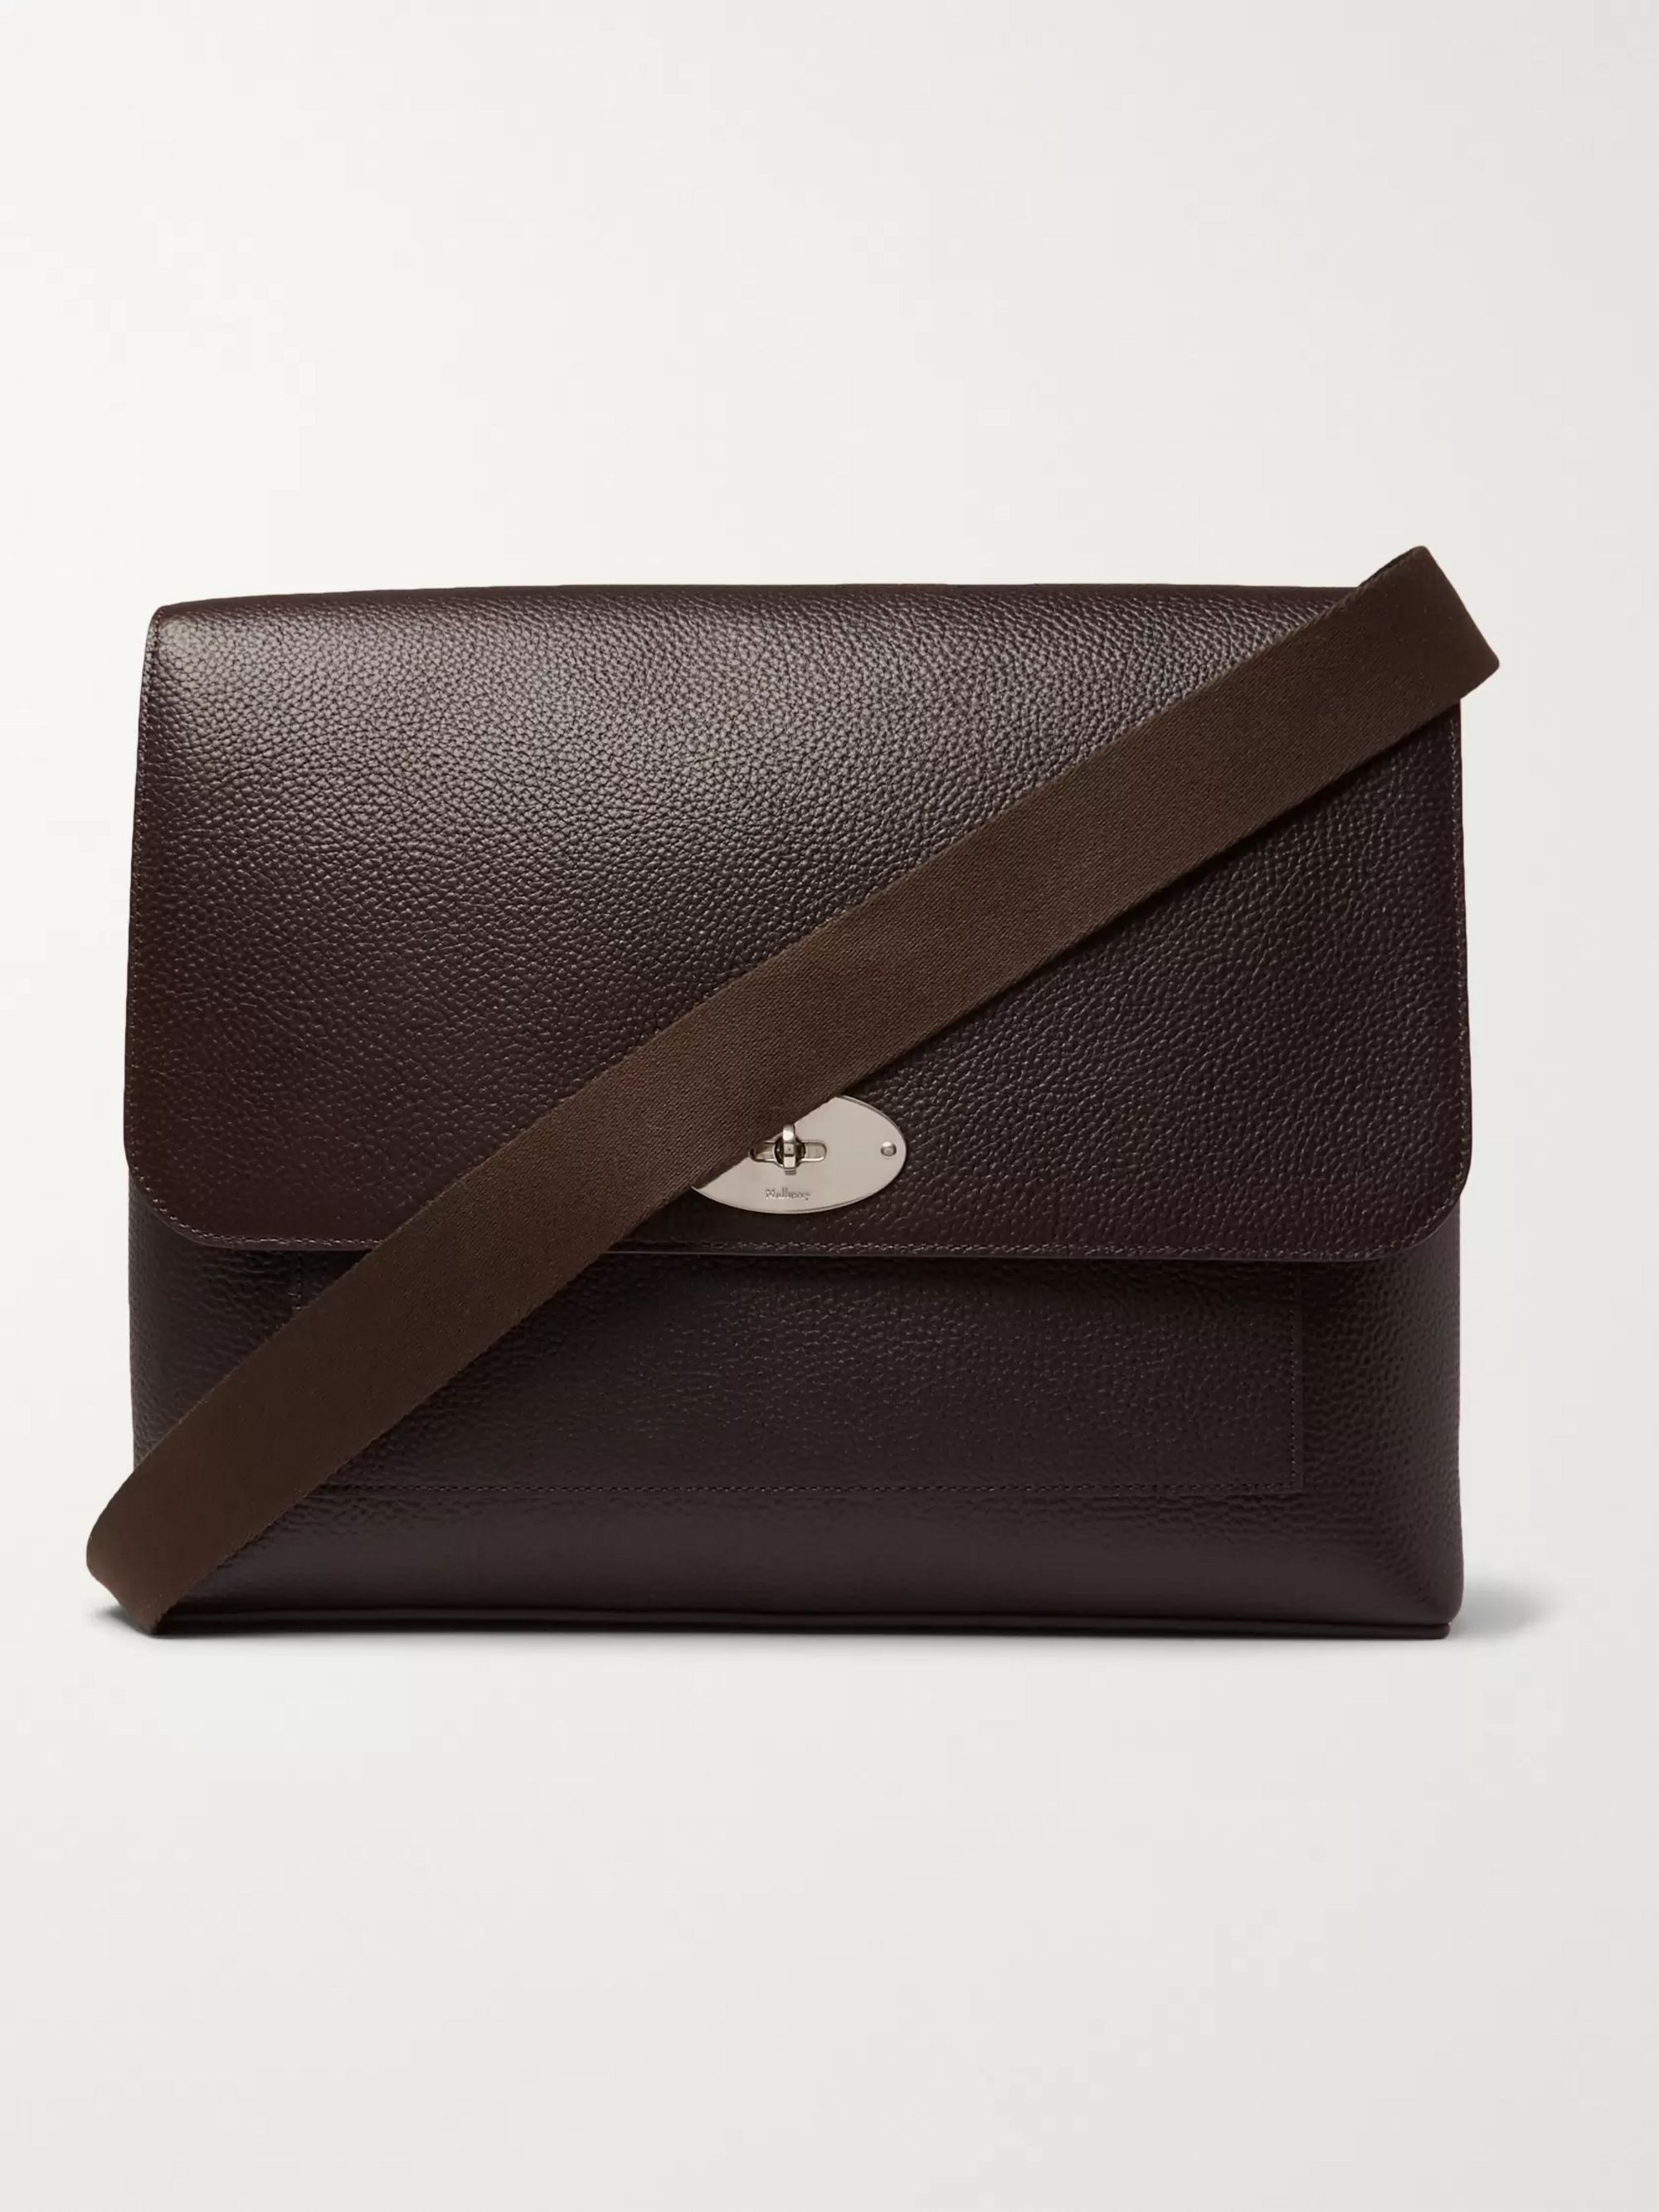 Mulberry East West Antony Padlock Pebble-Grain Leather Messenger Bag